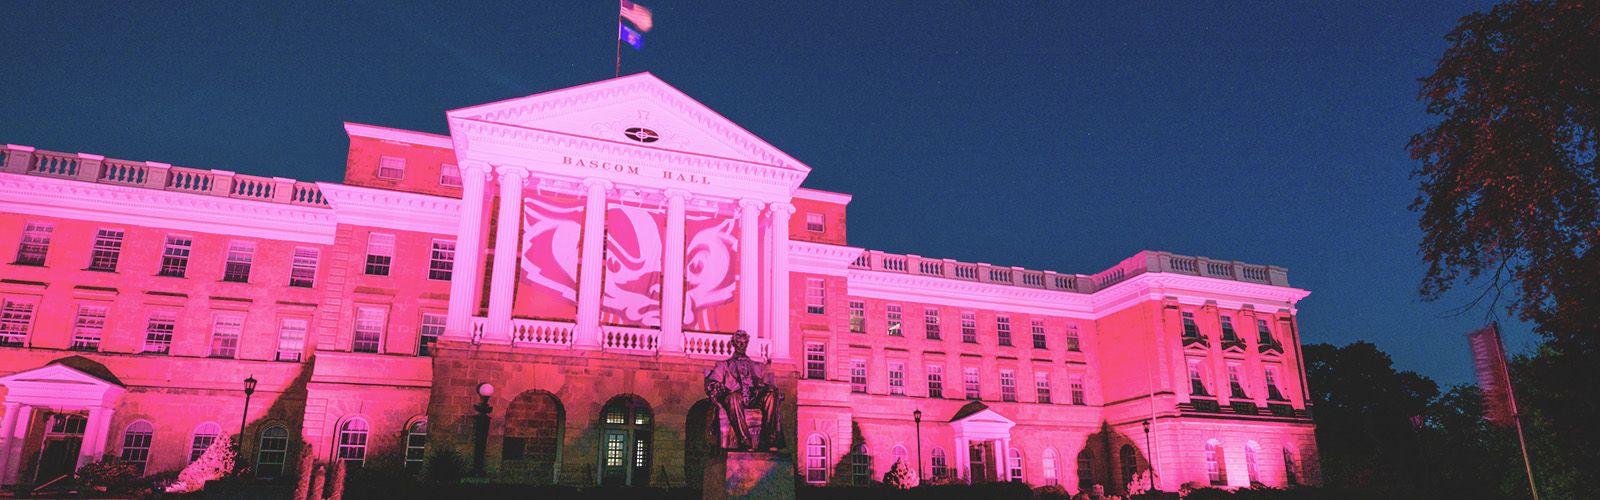 In honor of Breast Cancer Awareness Month, pink accent lighting illuminates the exterior of Bascom Hall and terrace plantings surrounding the Abraham Lincoln statue at the University of Wisconsin-Madison as dawn brightens the night sky on Oct. 20, 2017. Hanging between the building's column is a graphic banner of UW-Madison mascot Bucky Badger. (Photo by Jeff Miller / UW-Madison)